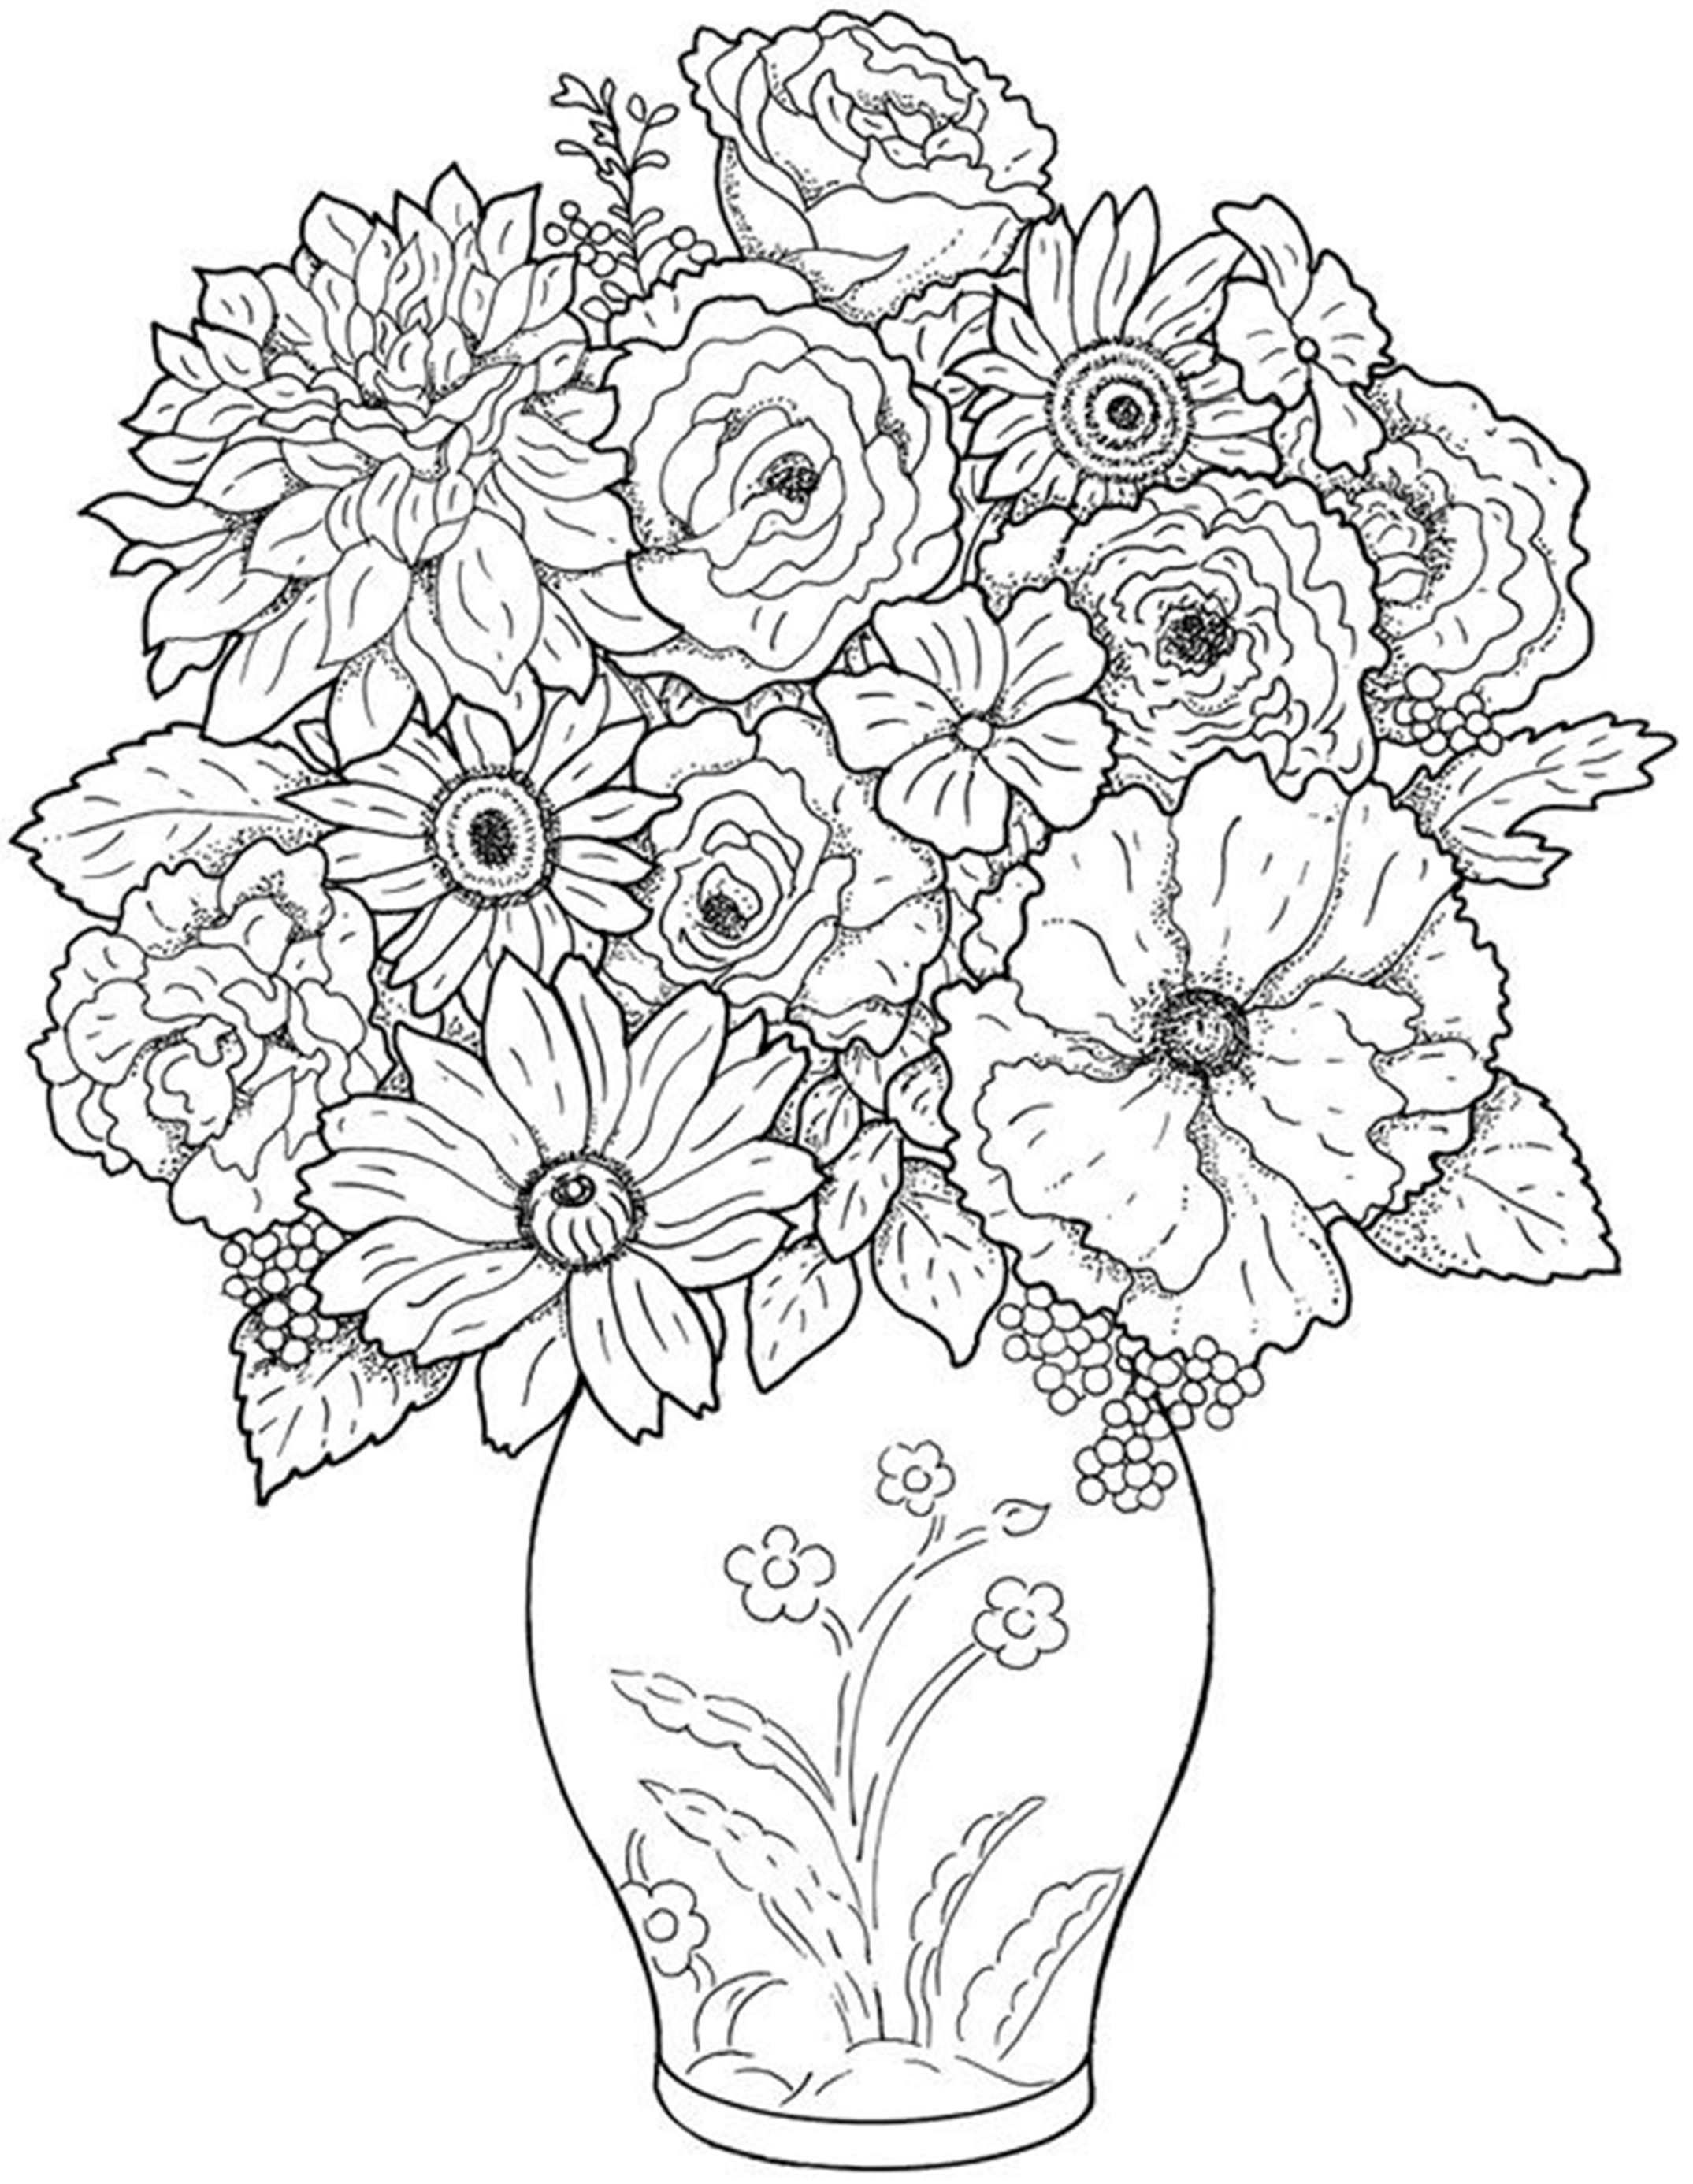 Free Printable Flower Coloring Pages For Kids Best Free Printable Coloring Pages For Adults